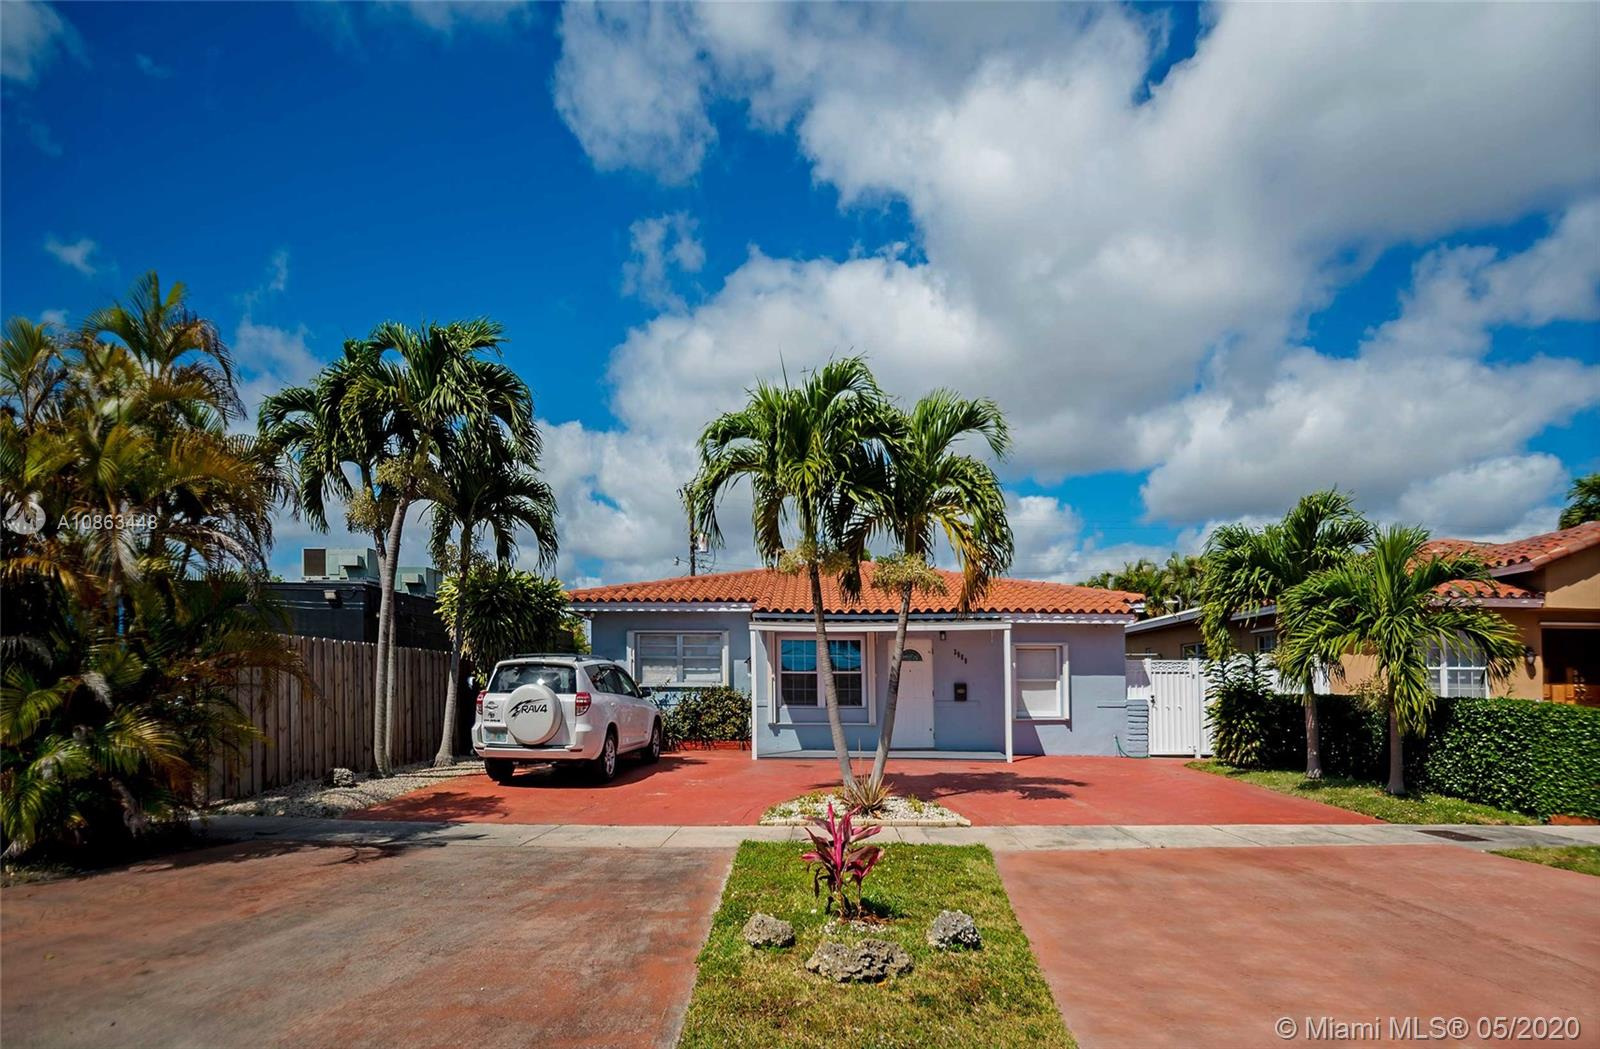 3960 SW 58th Ct, Miami, Florida 33155, 4 Bedrooms Bedrooms, ,5 BathroomsBathrooms,Residential,For Sale,3960 SW 58th Ct,A10863448